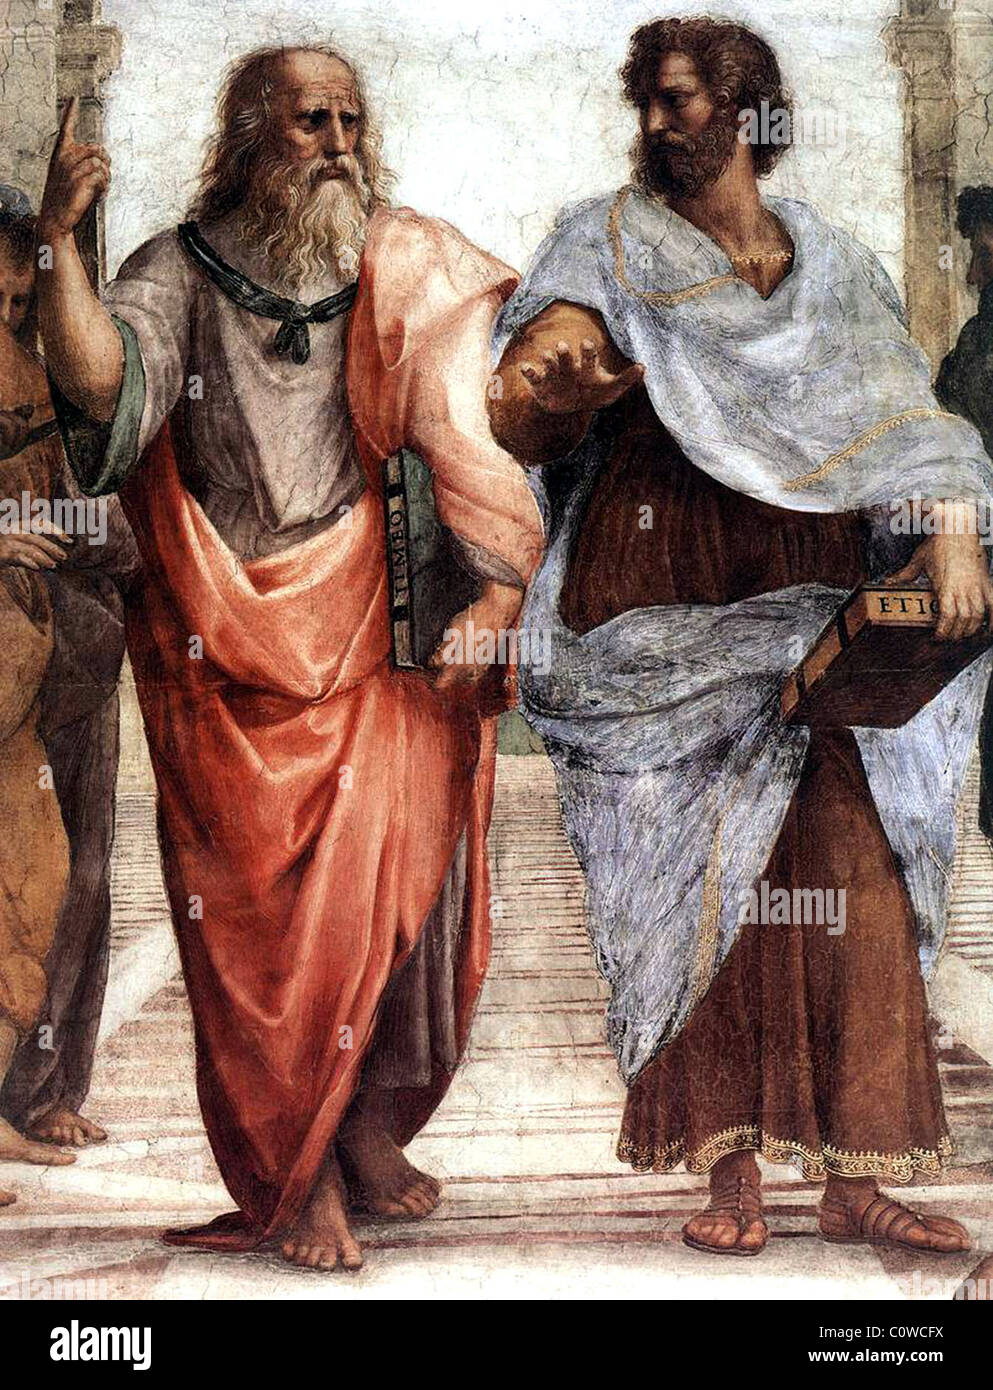 Plato (left) and Aristotle. Stock Photo